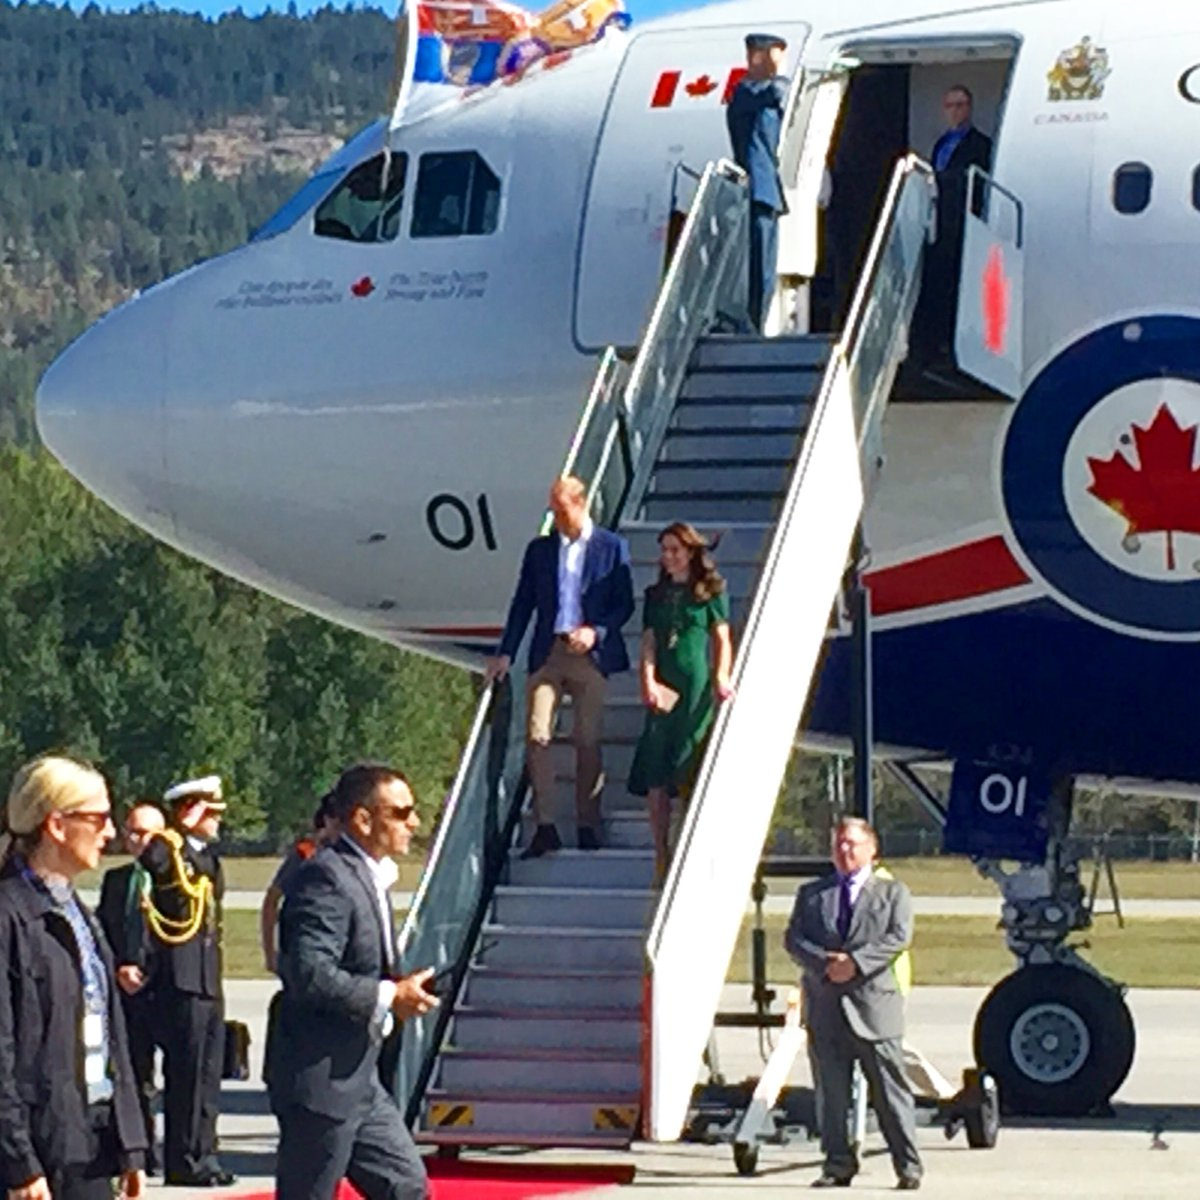 Proud to welcome the Duke and Duchess to #YLW earlier today! #RoyalVisitCanada https://t.co/FpI6xtzsFh